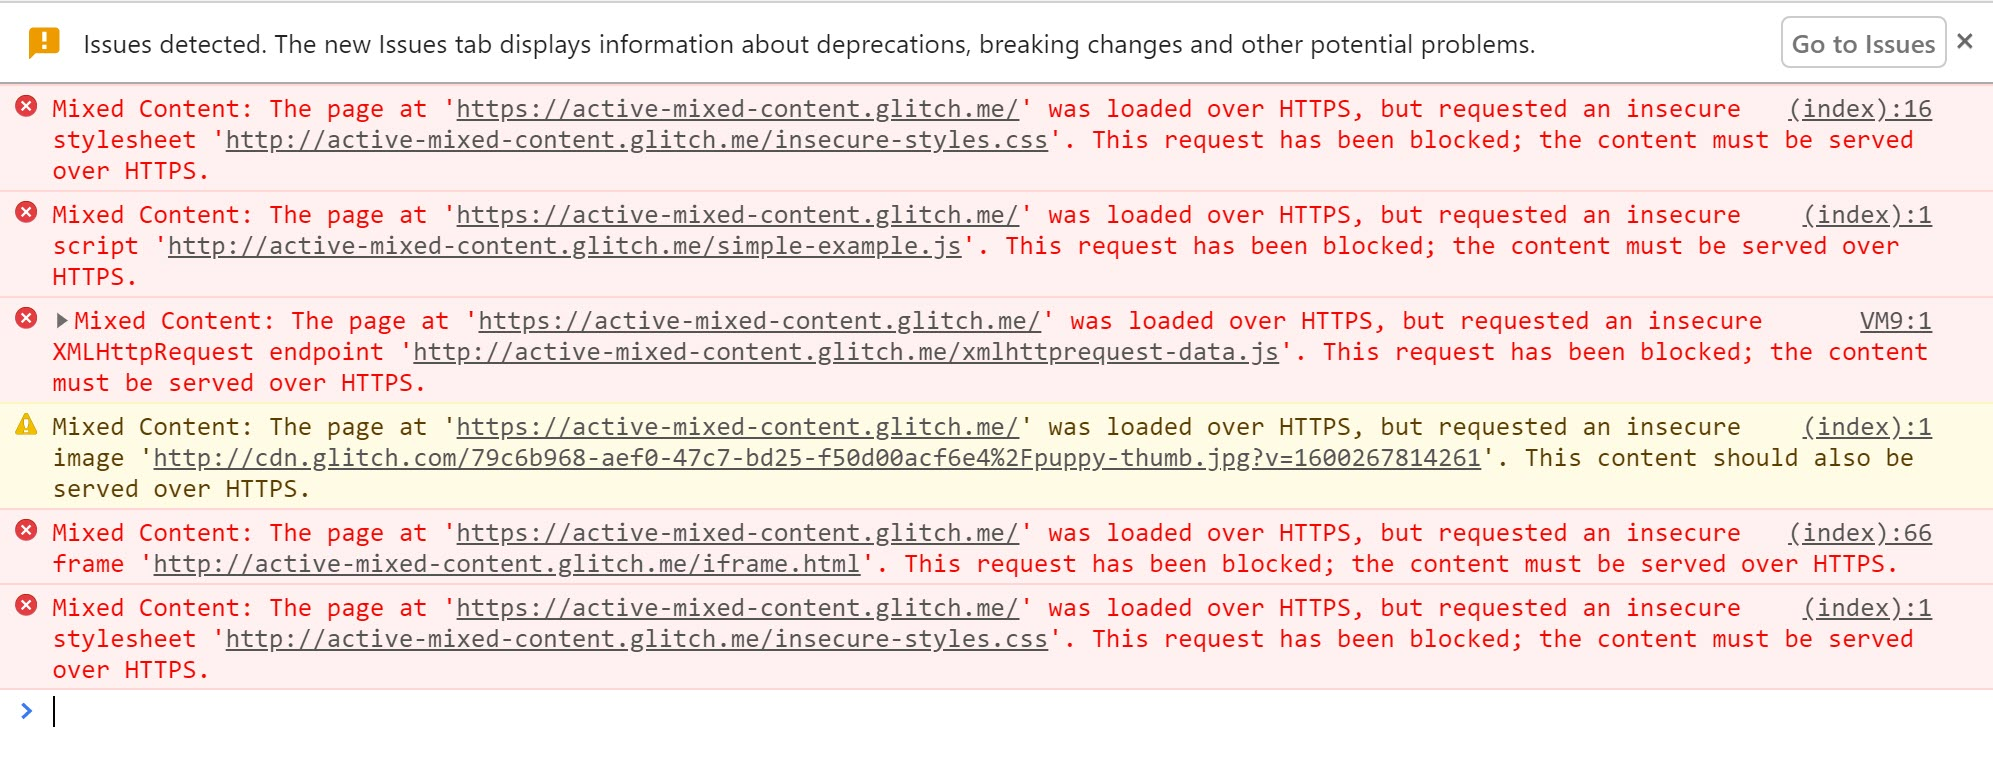 Chrome DevTools showing the warnings displayed when active mixed content is blocked